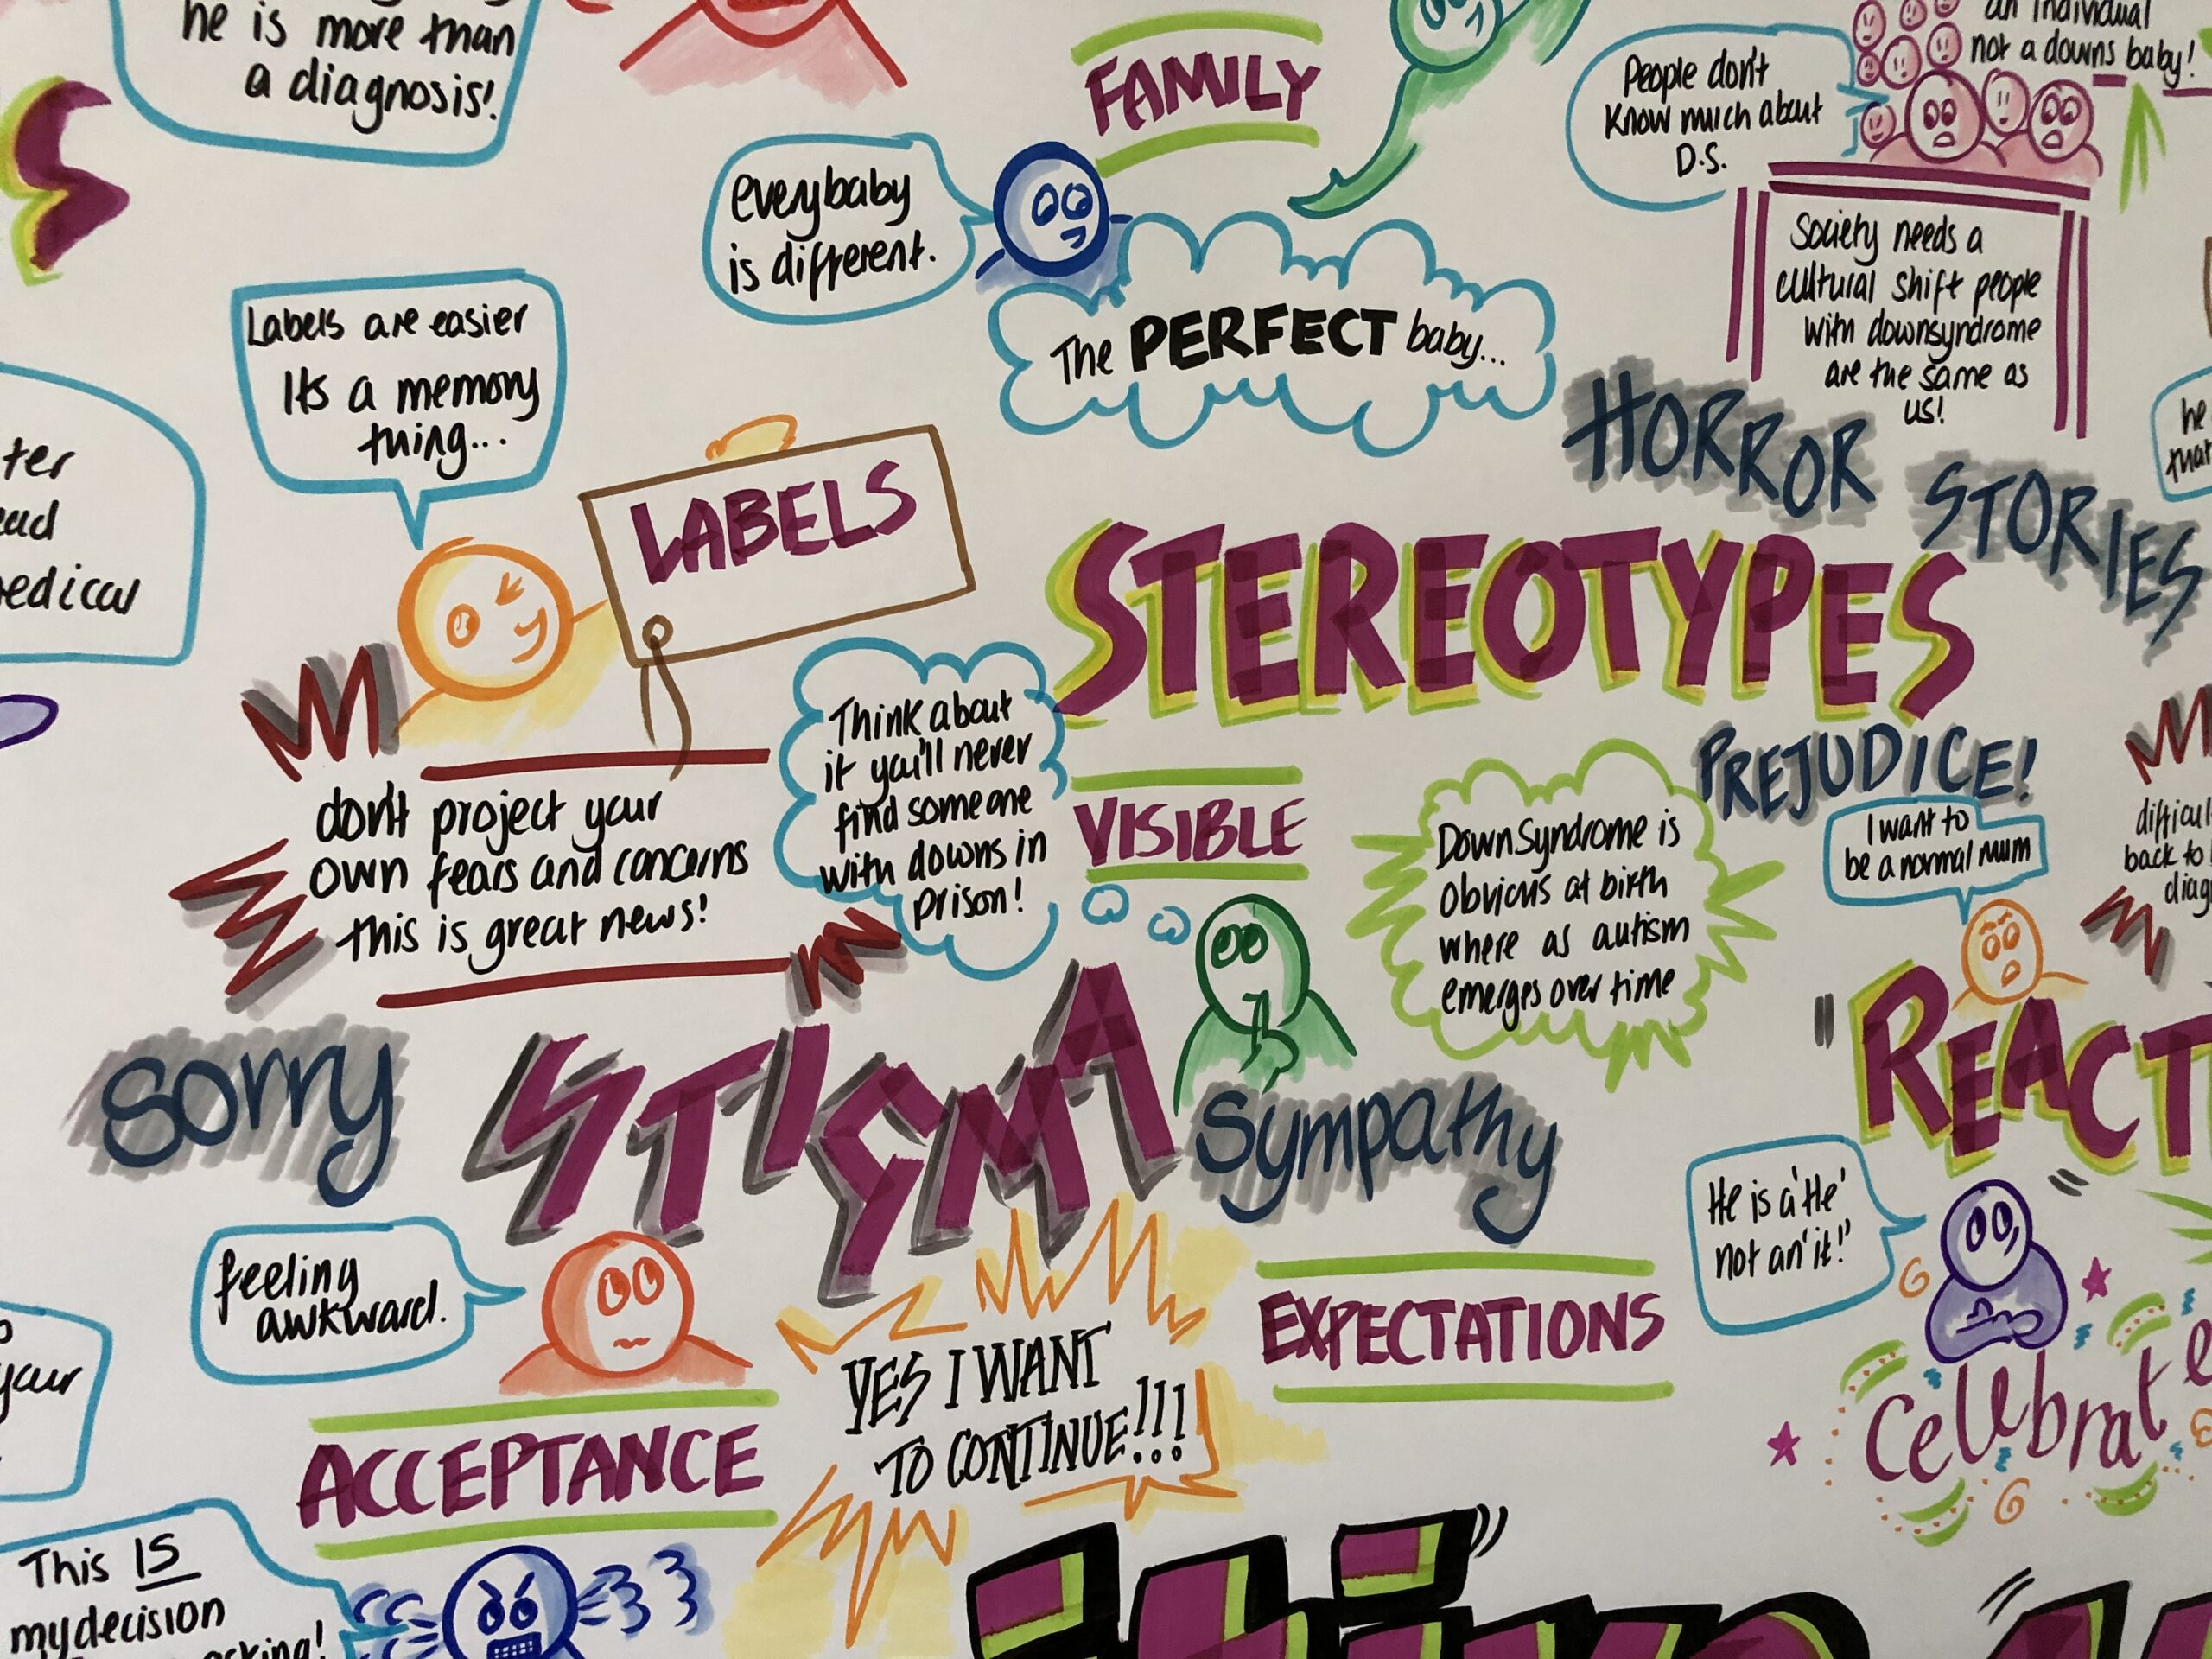 DS Stigma and stereotypes Anna graphicIMG_6184